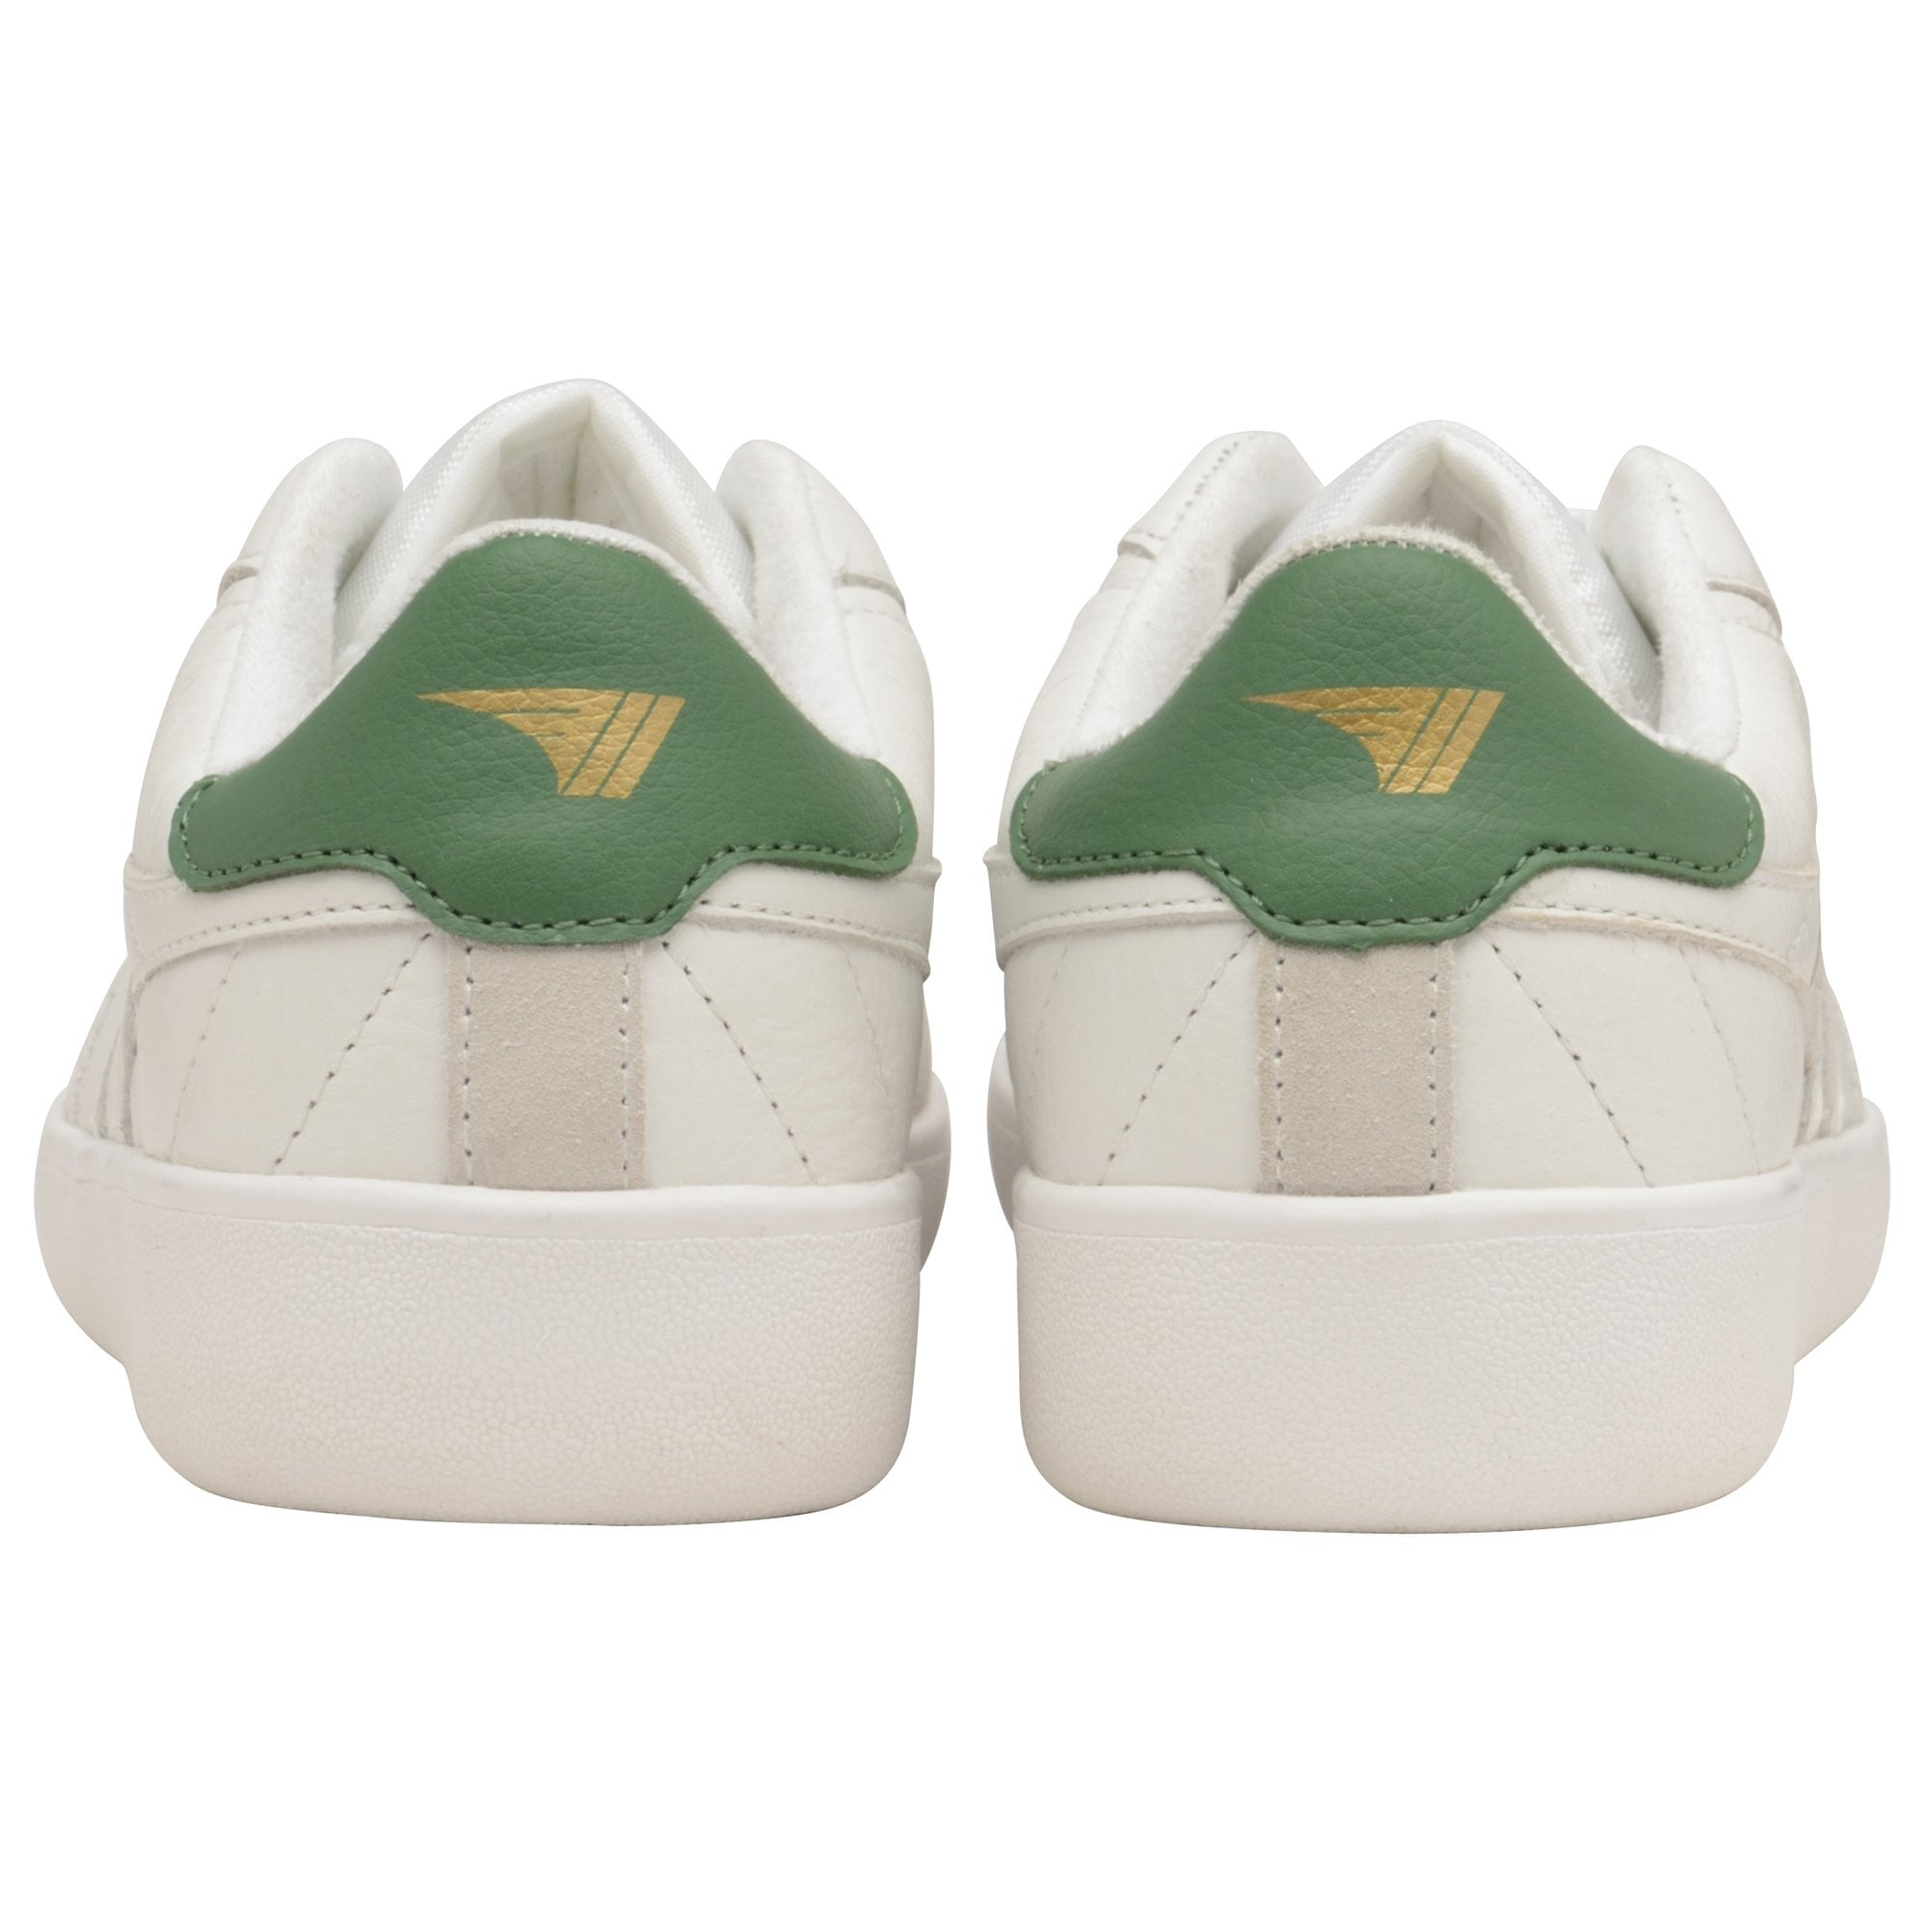 Women's Inca Leather Sneakers